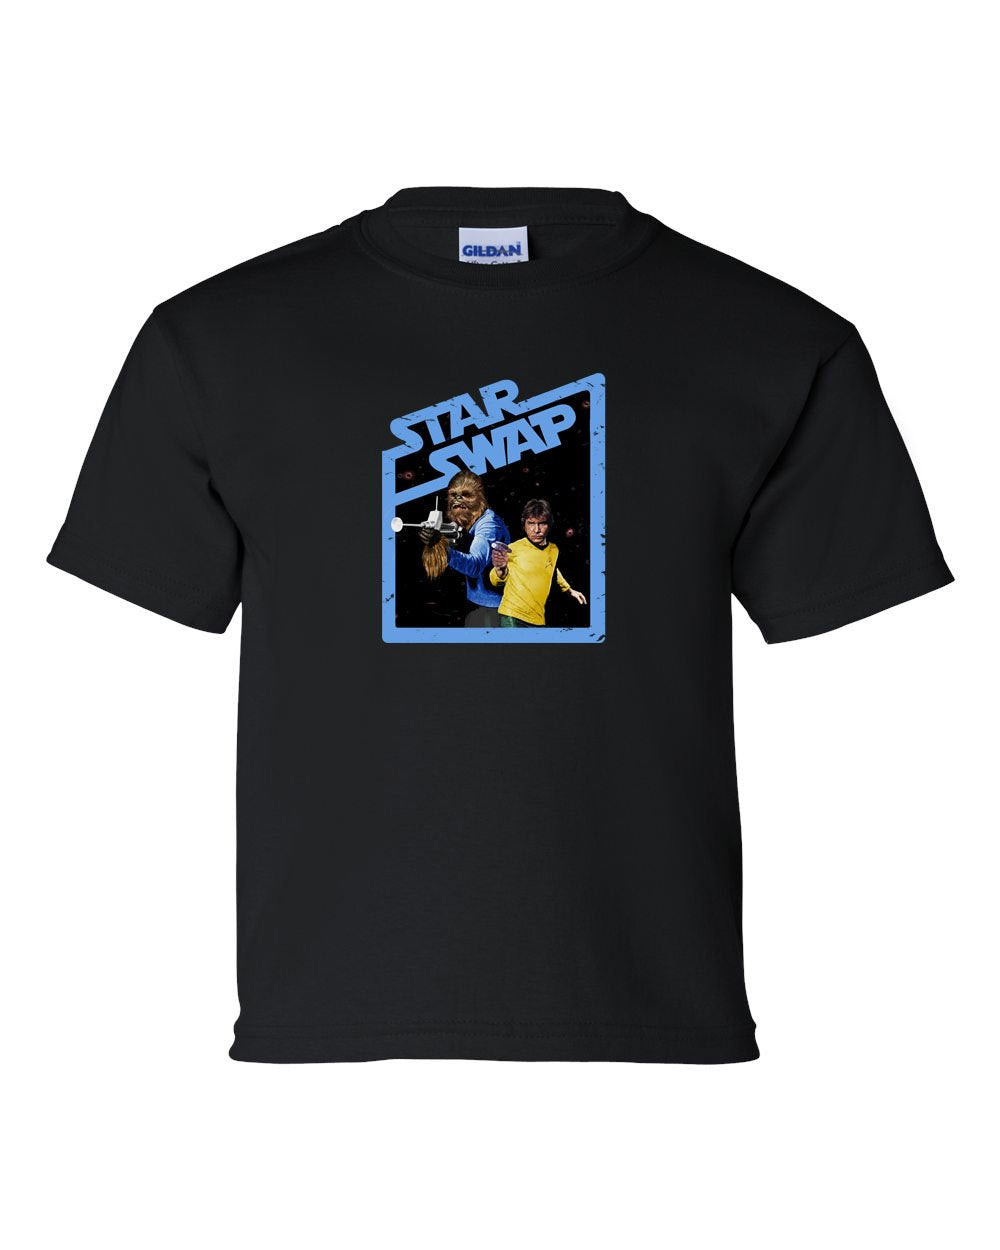 Star Swap KIDS T-Shirt